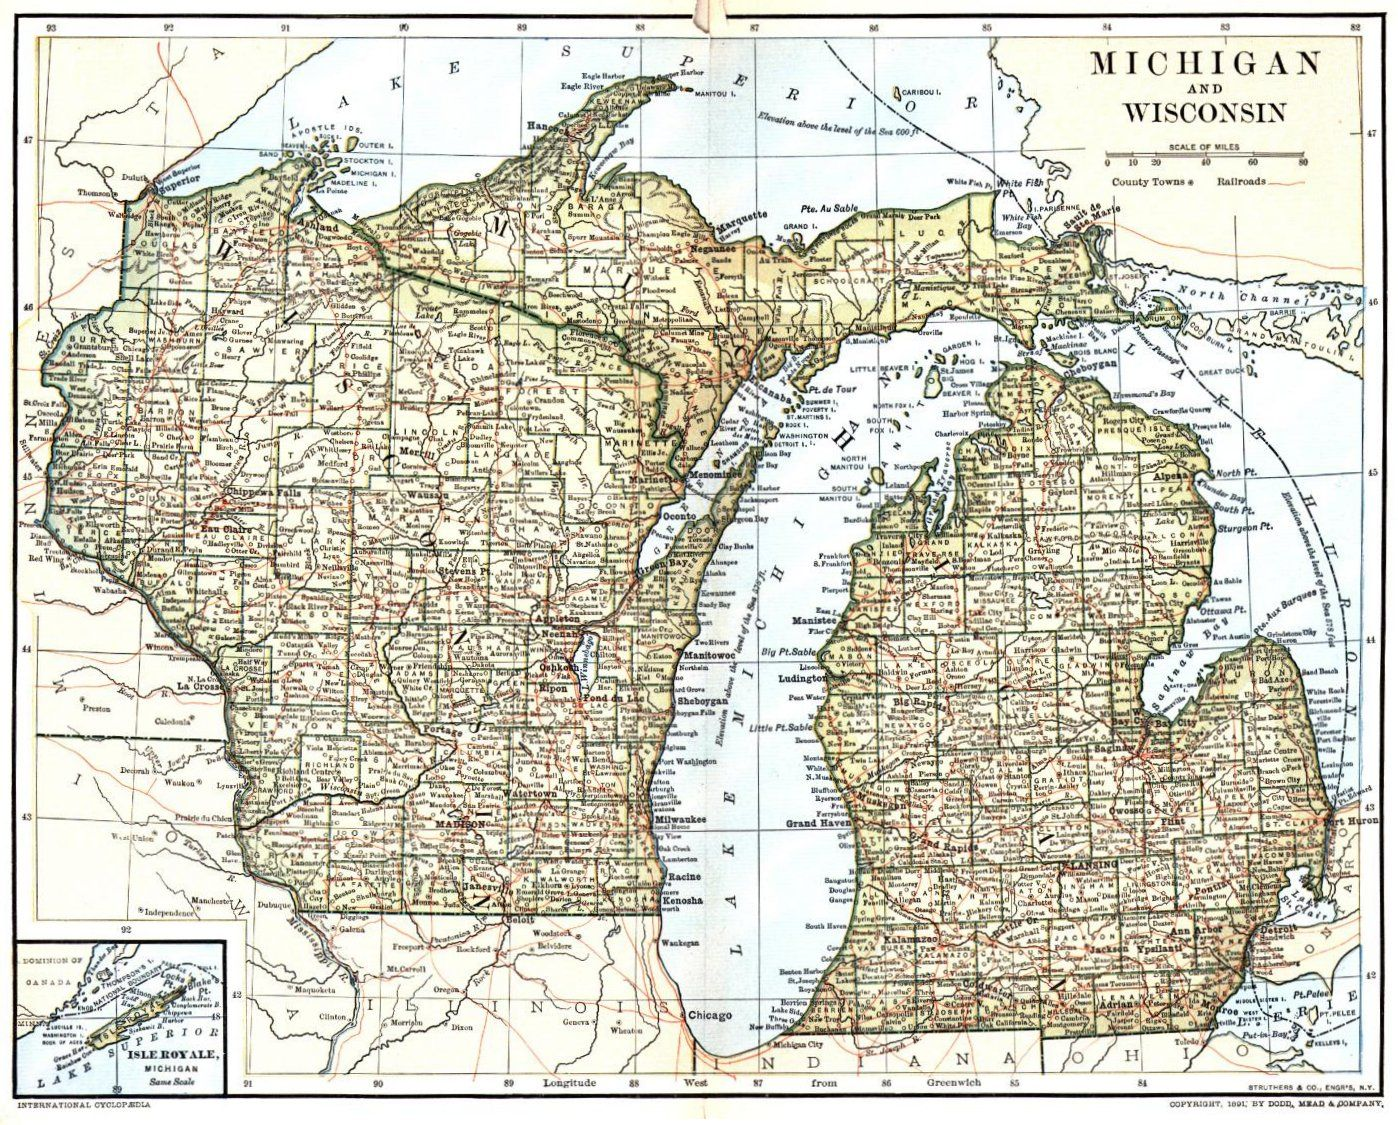 Map Of Michigan And Wisconsin From The Wisconsin Digital Map - Vintage us road map